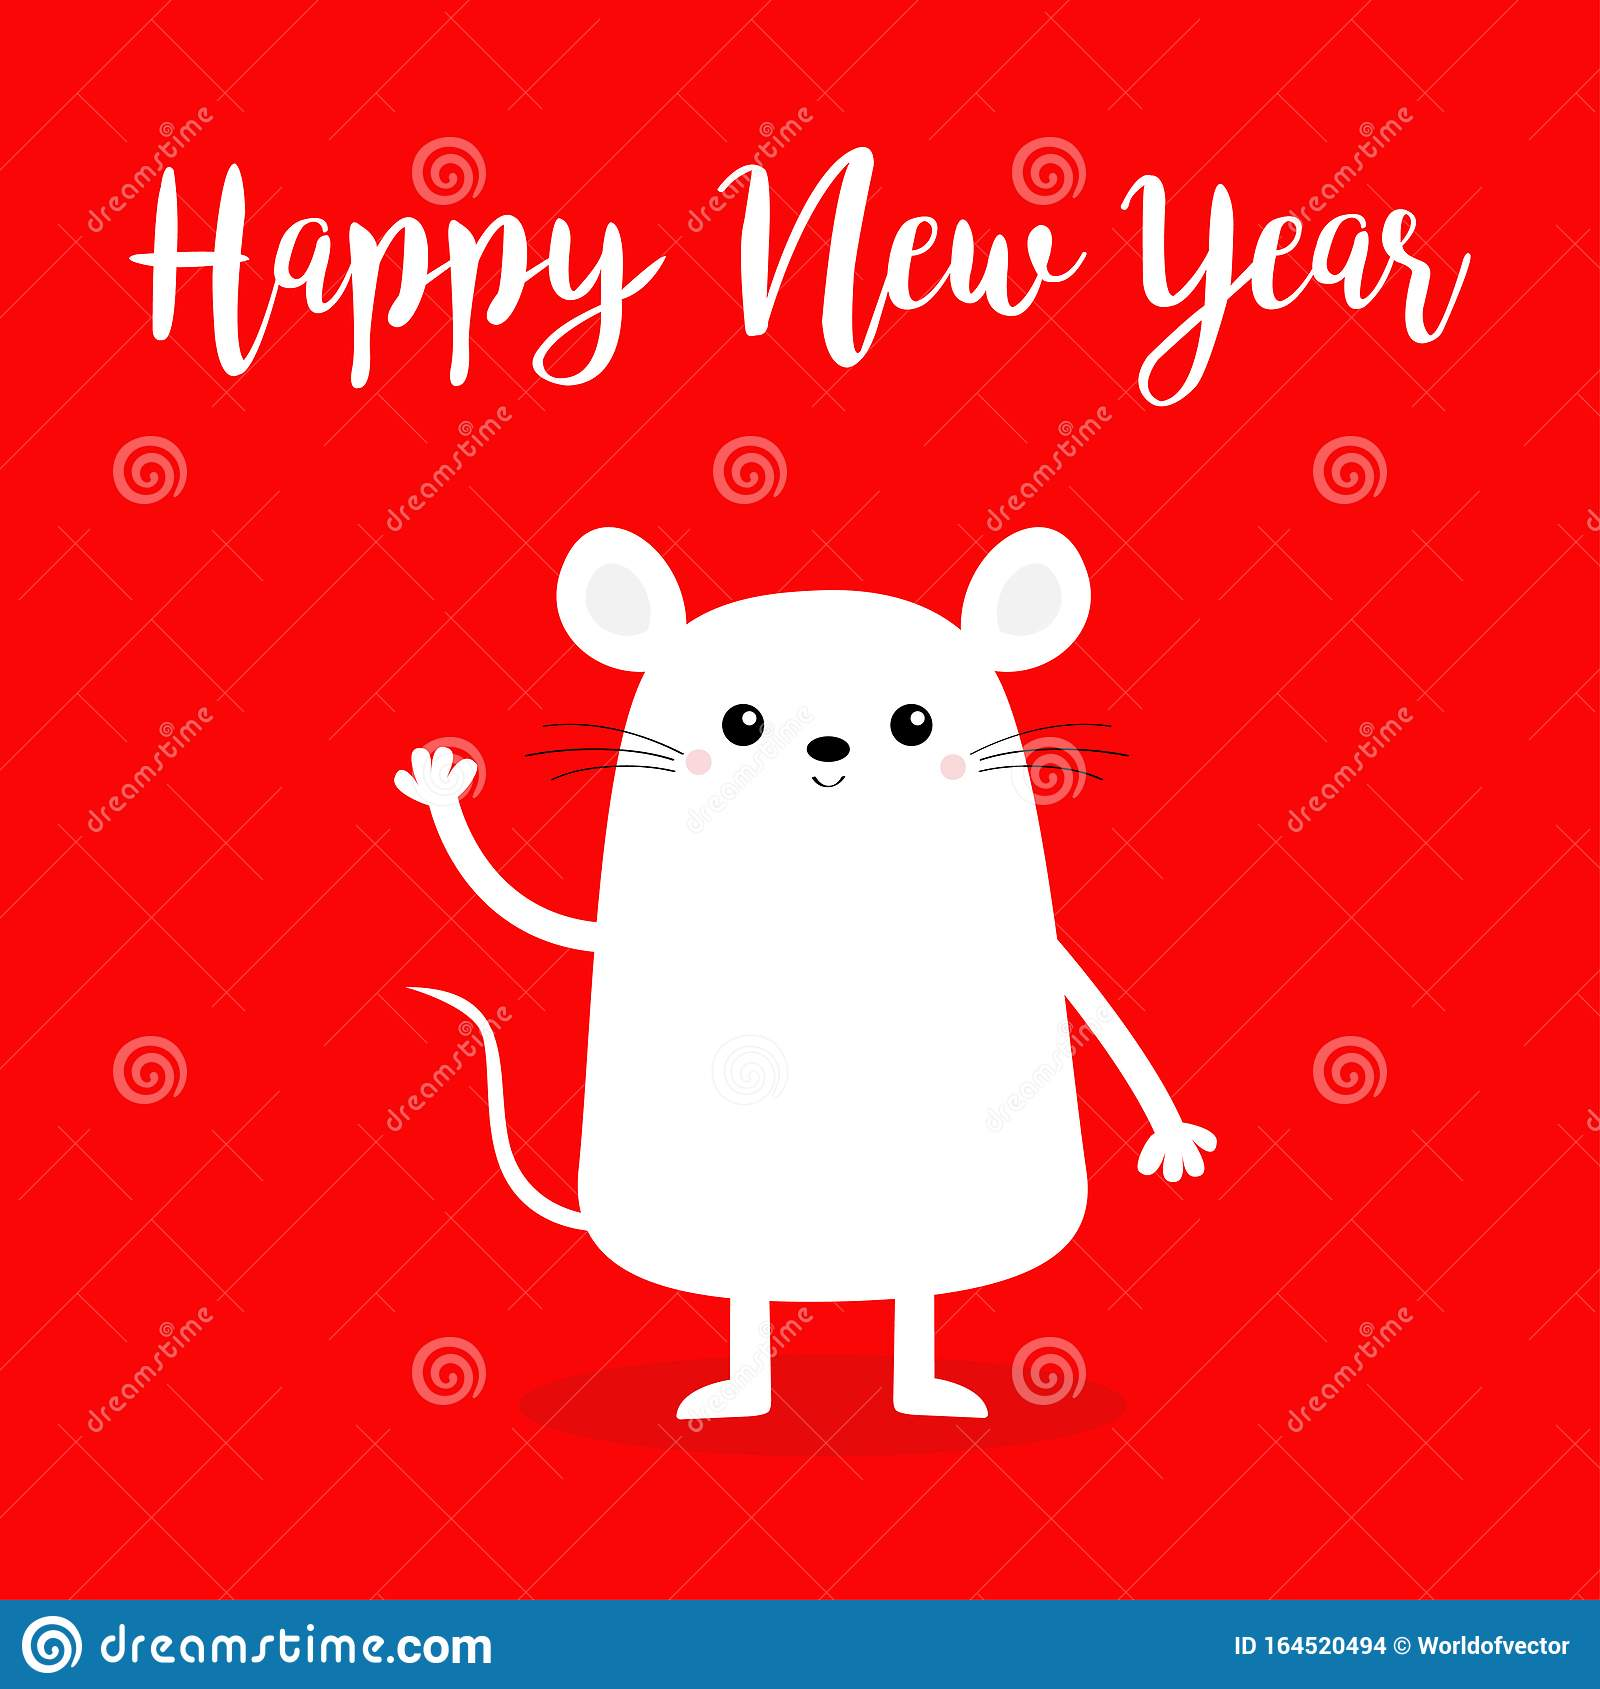 Southwest Merry Christmas And Happy New Year 2020 Pictures Free Happy New Year 2020 Sign Symbol. White Mouse Waving Hand. Merry